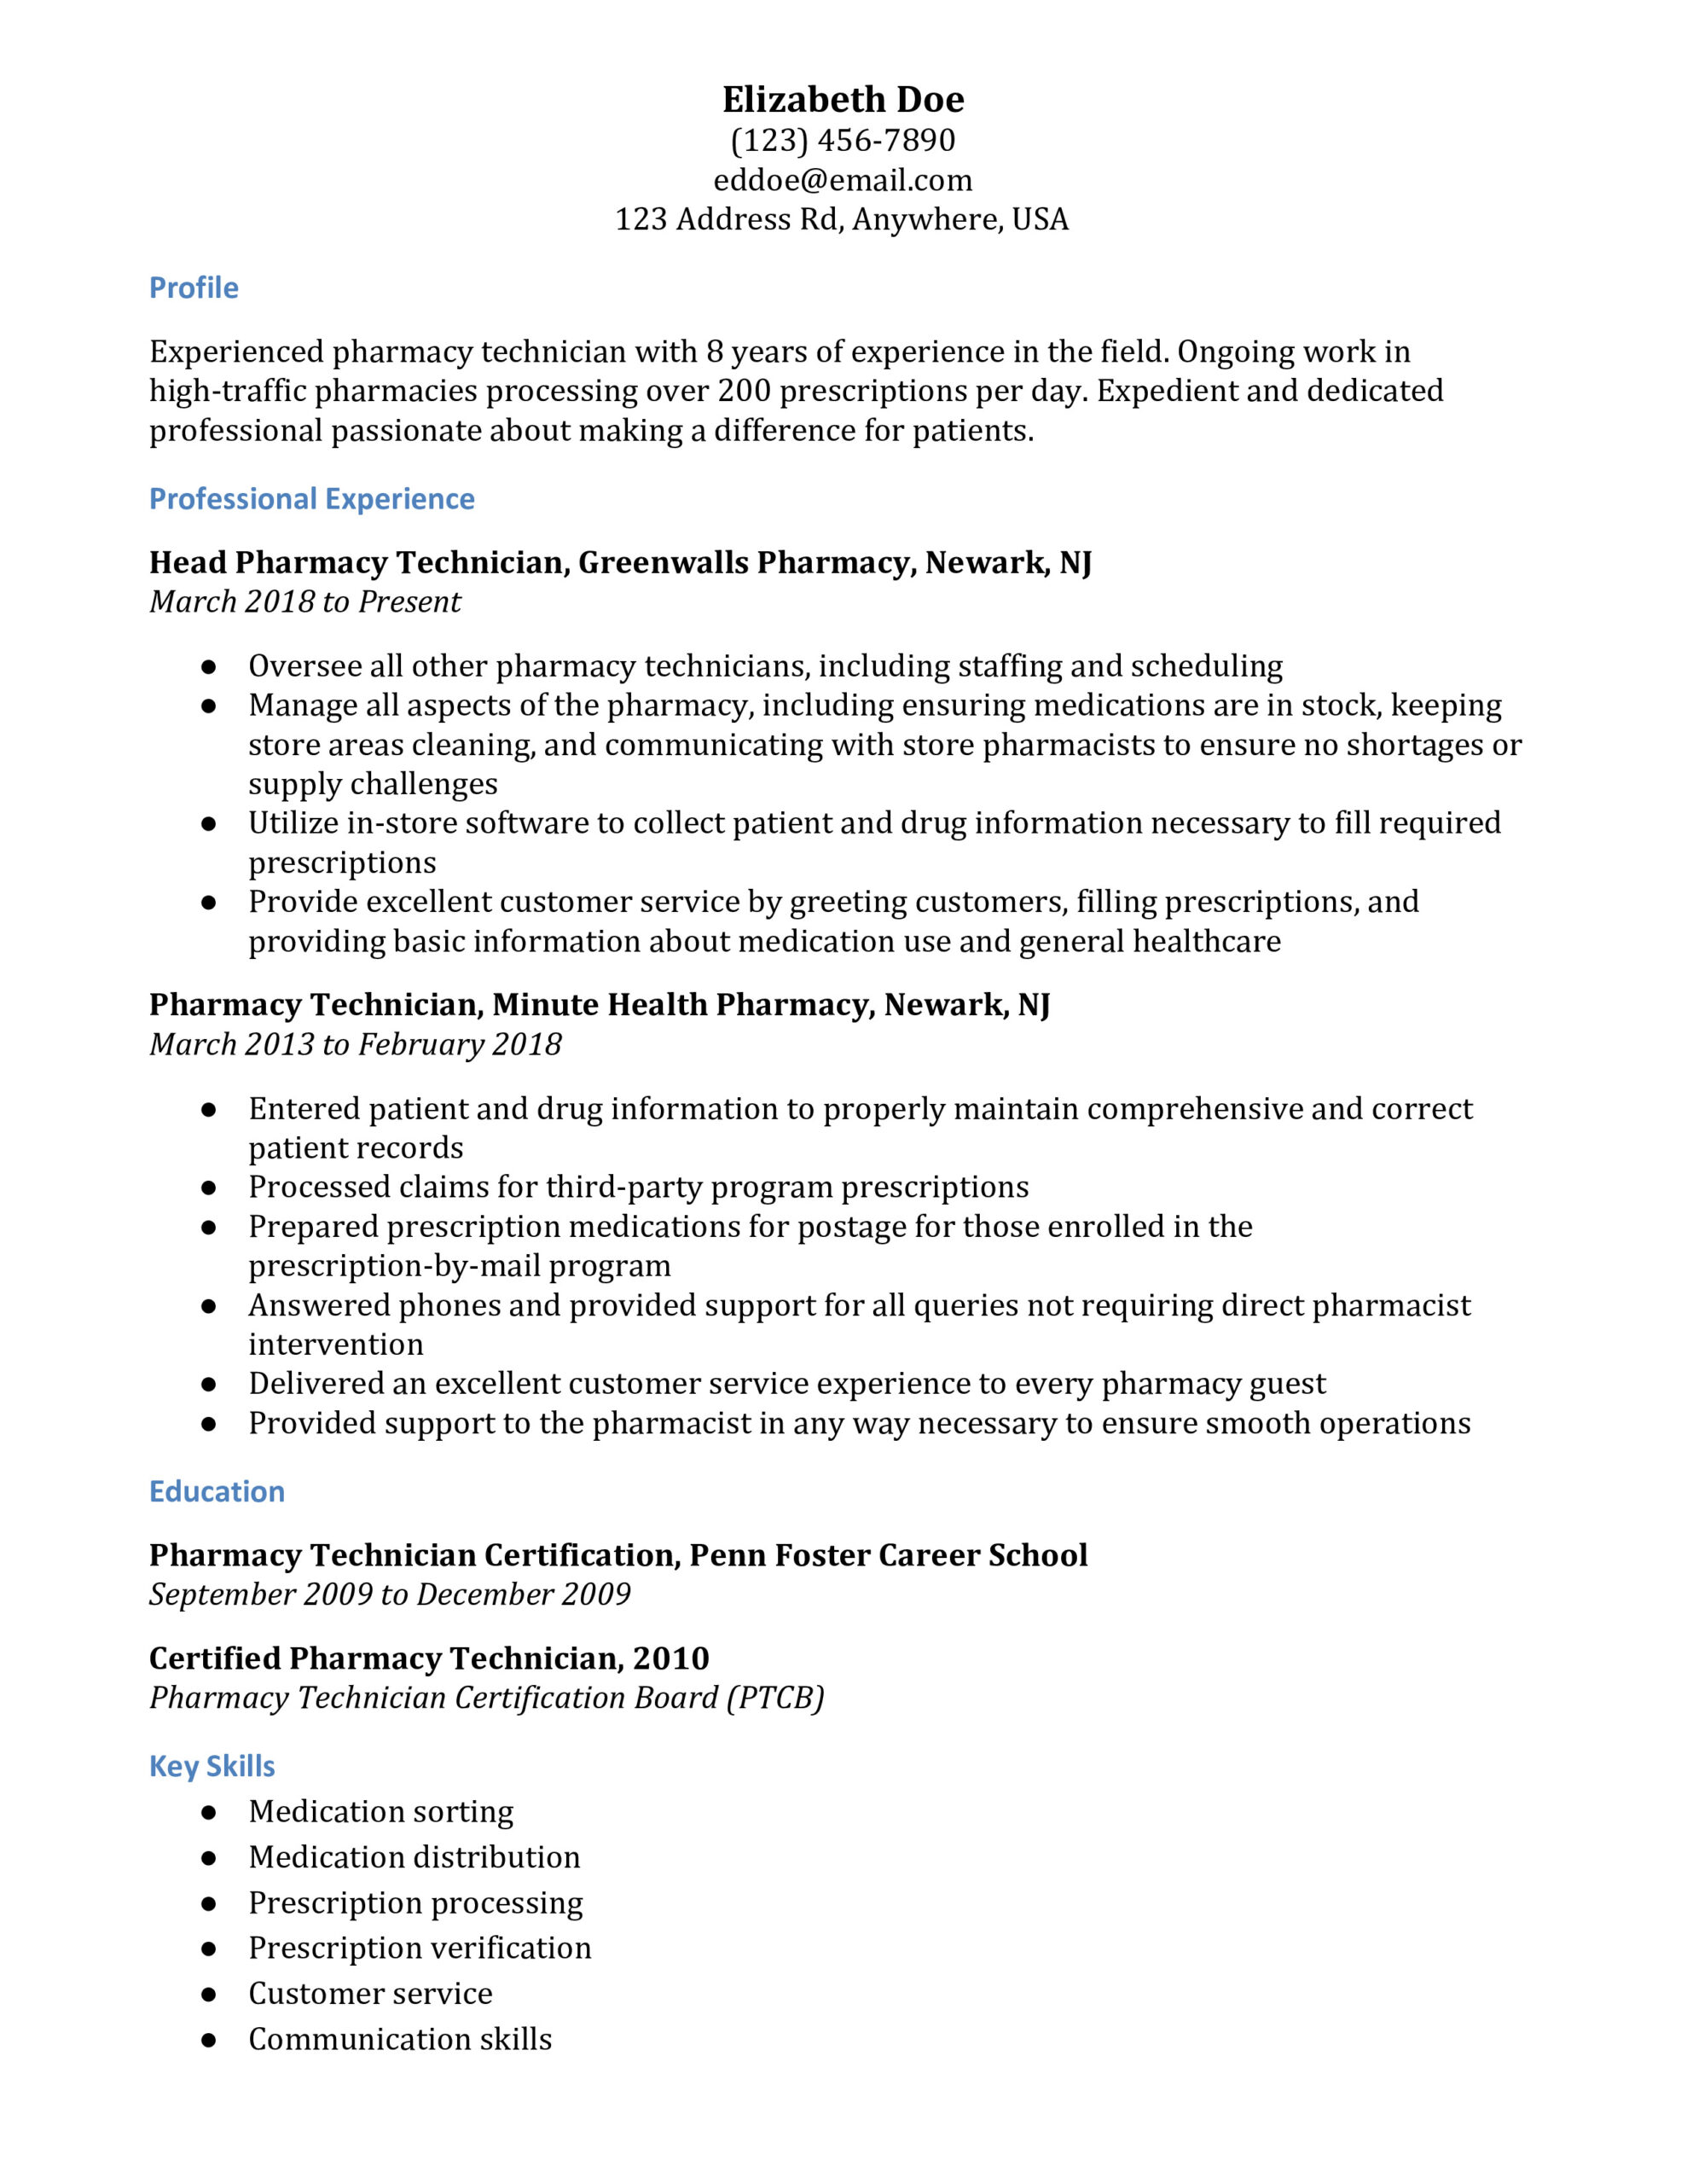 pharmacy technician resume examples resumebuilder skills for fmcg company oracle with rac Resume Pharmacy Technician Resume Skills